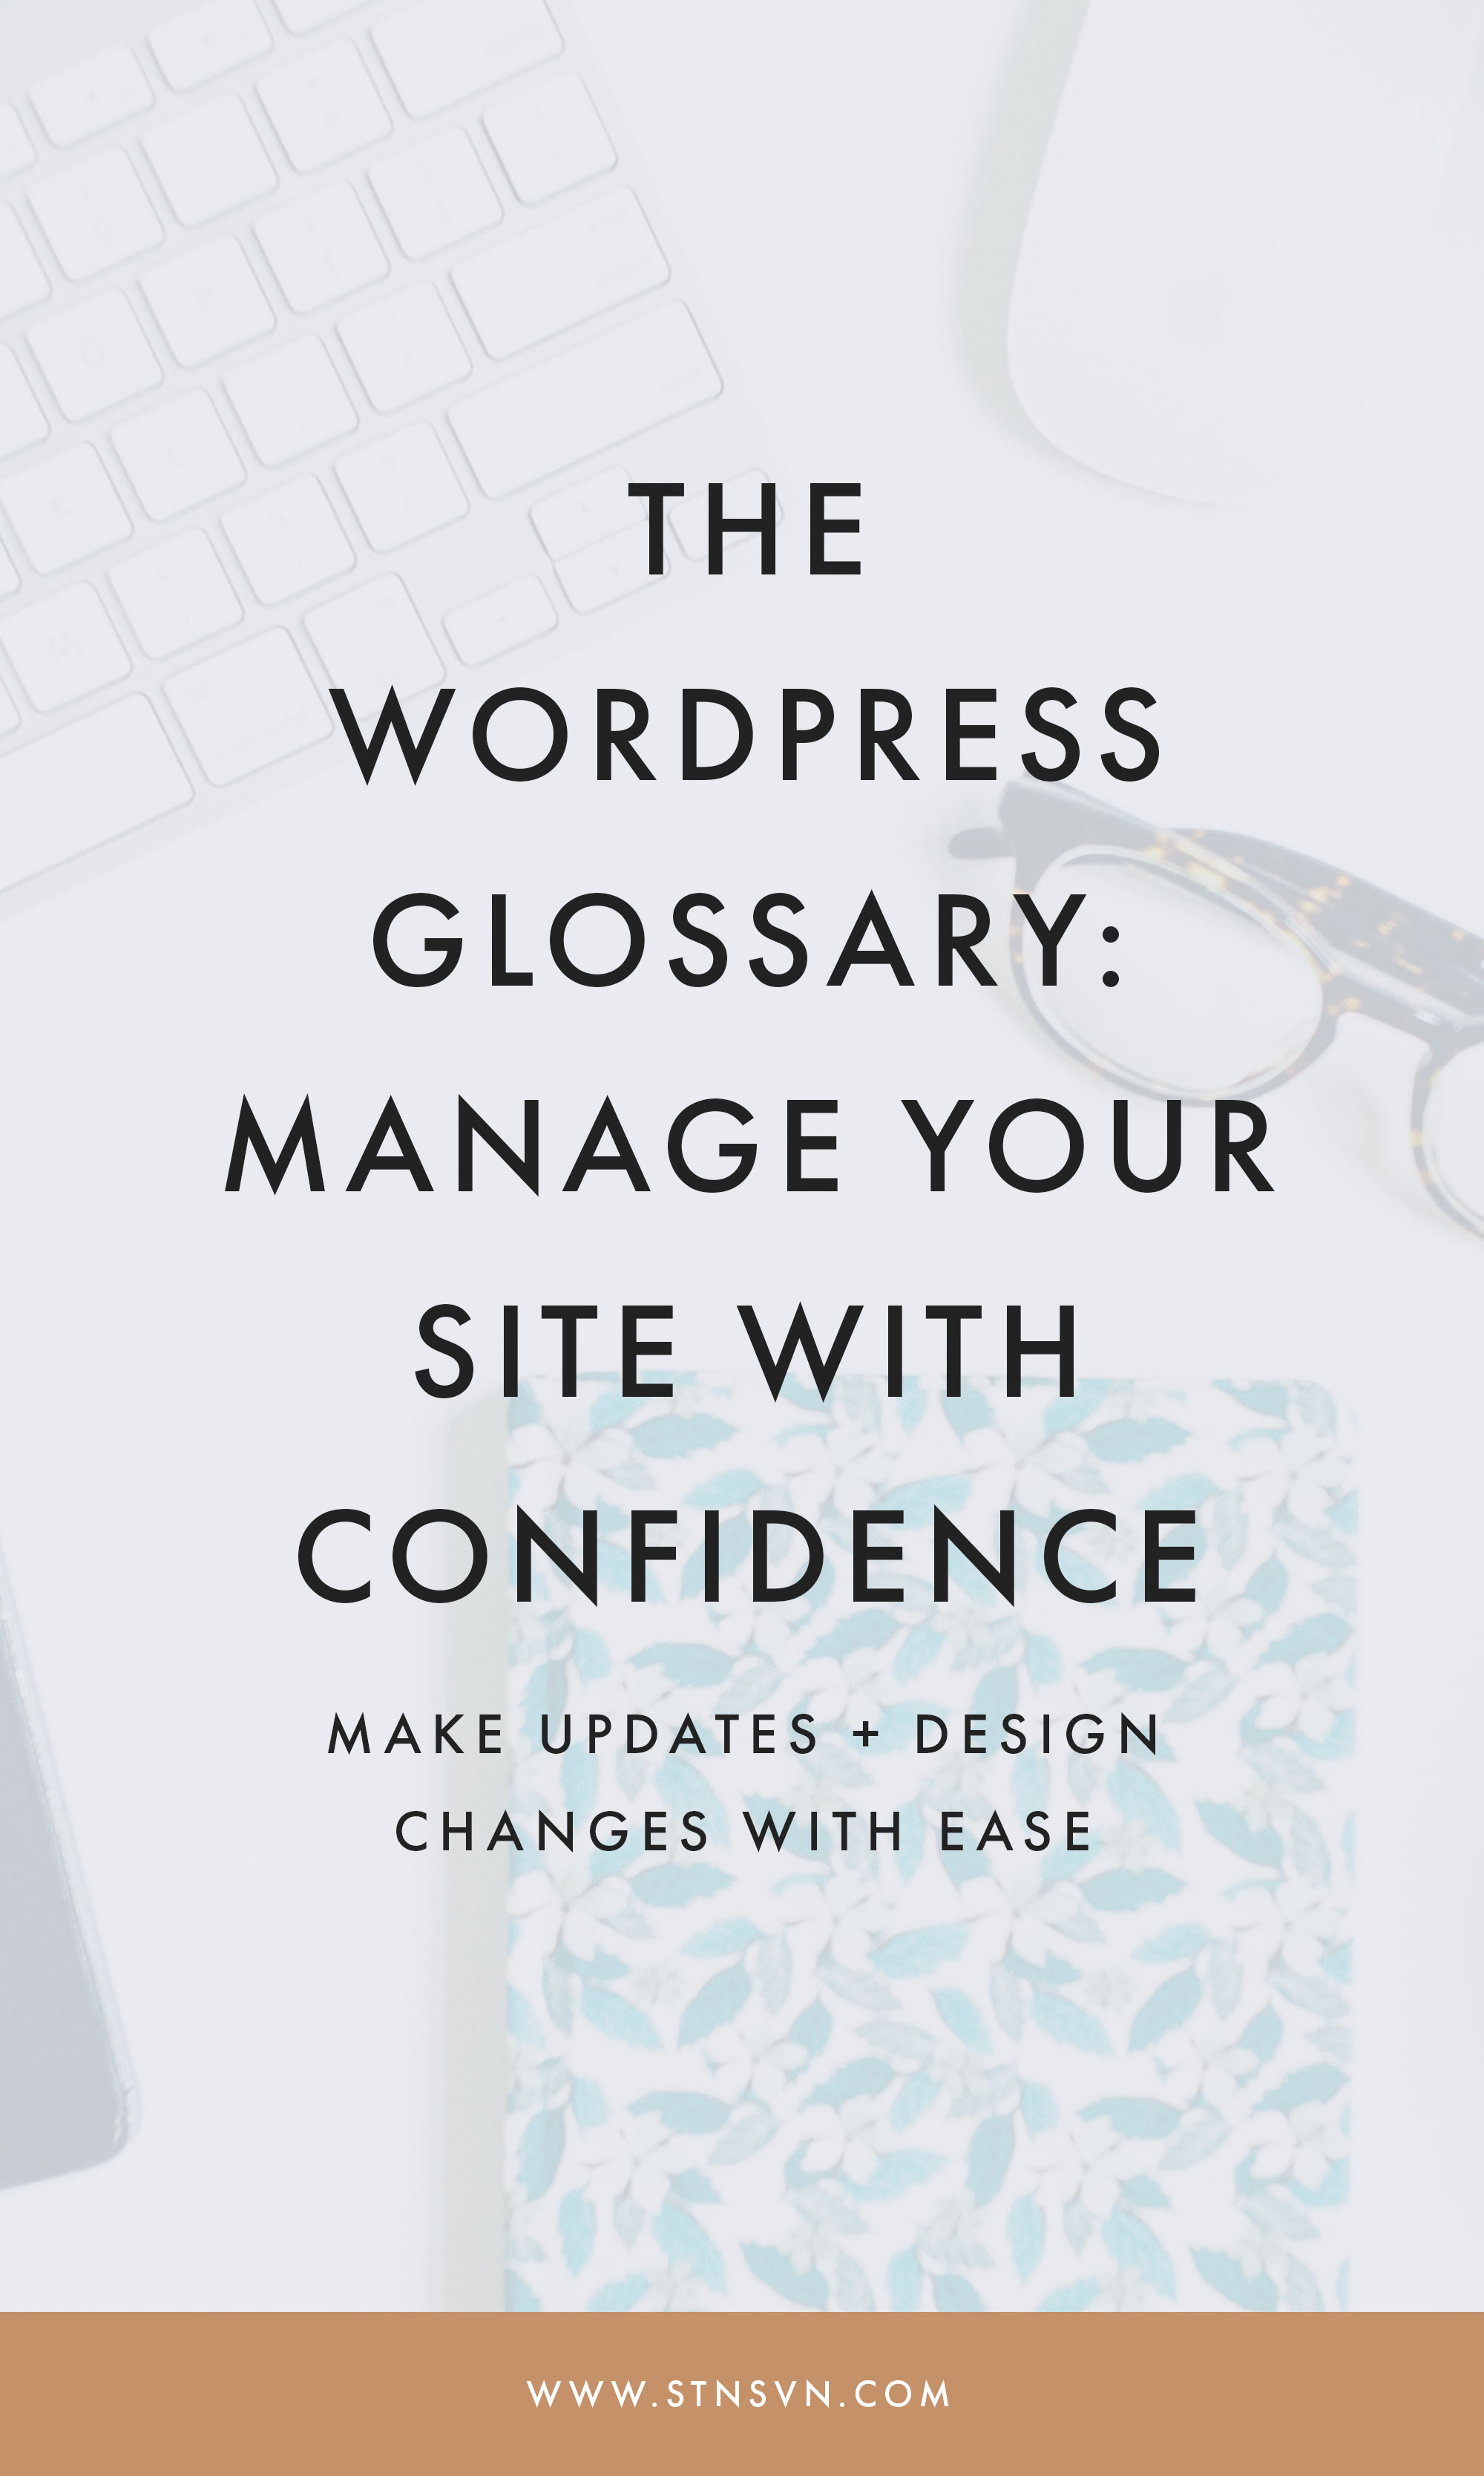 The WordPress Glossary- Manage Your Site with Confidence.jpeg